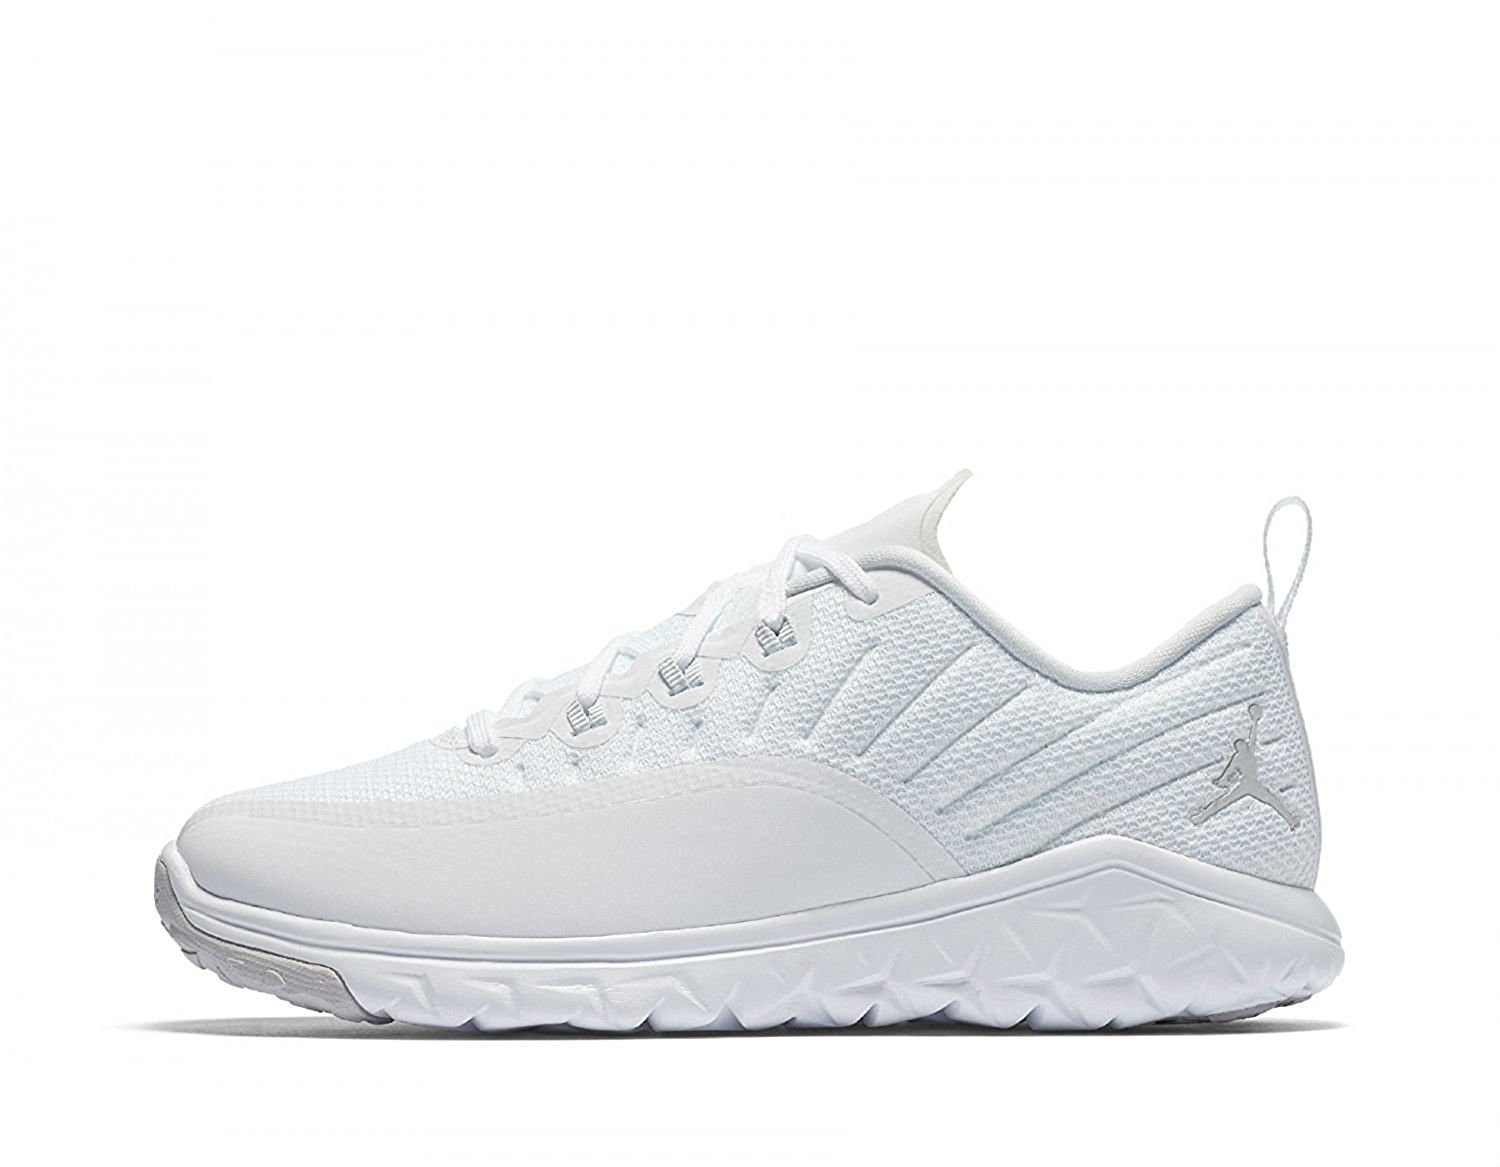 reputable site f7387 f1fab Get Quotations · Jordan Trainer Prime White Pure Platinum (Big Kid)